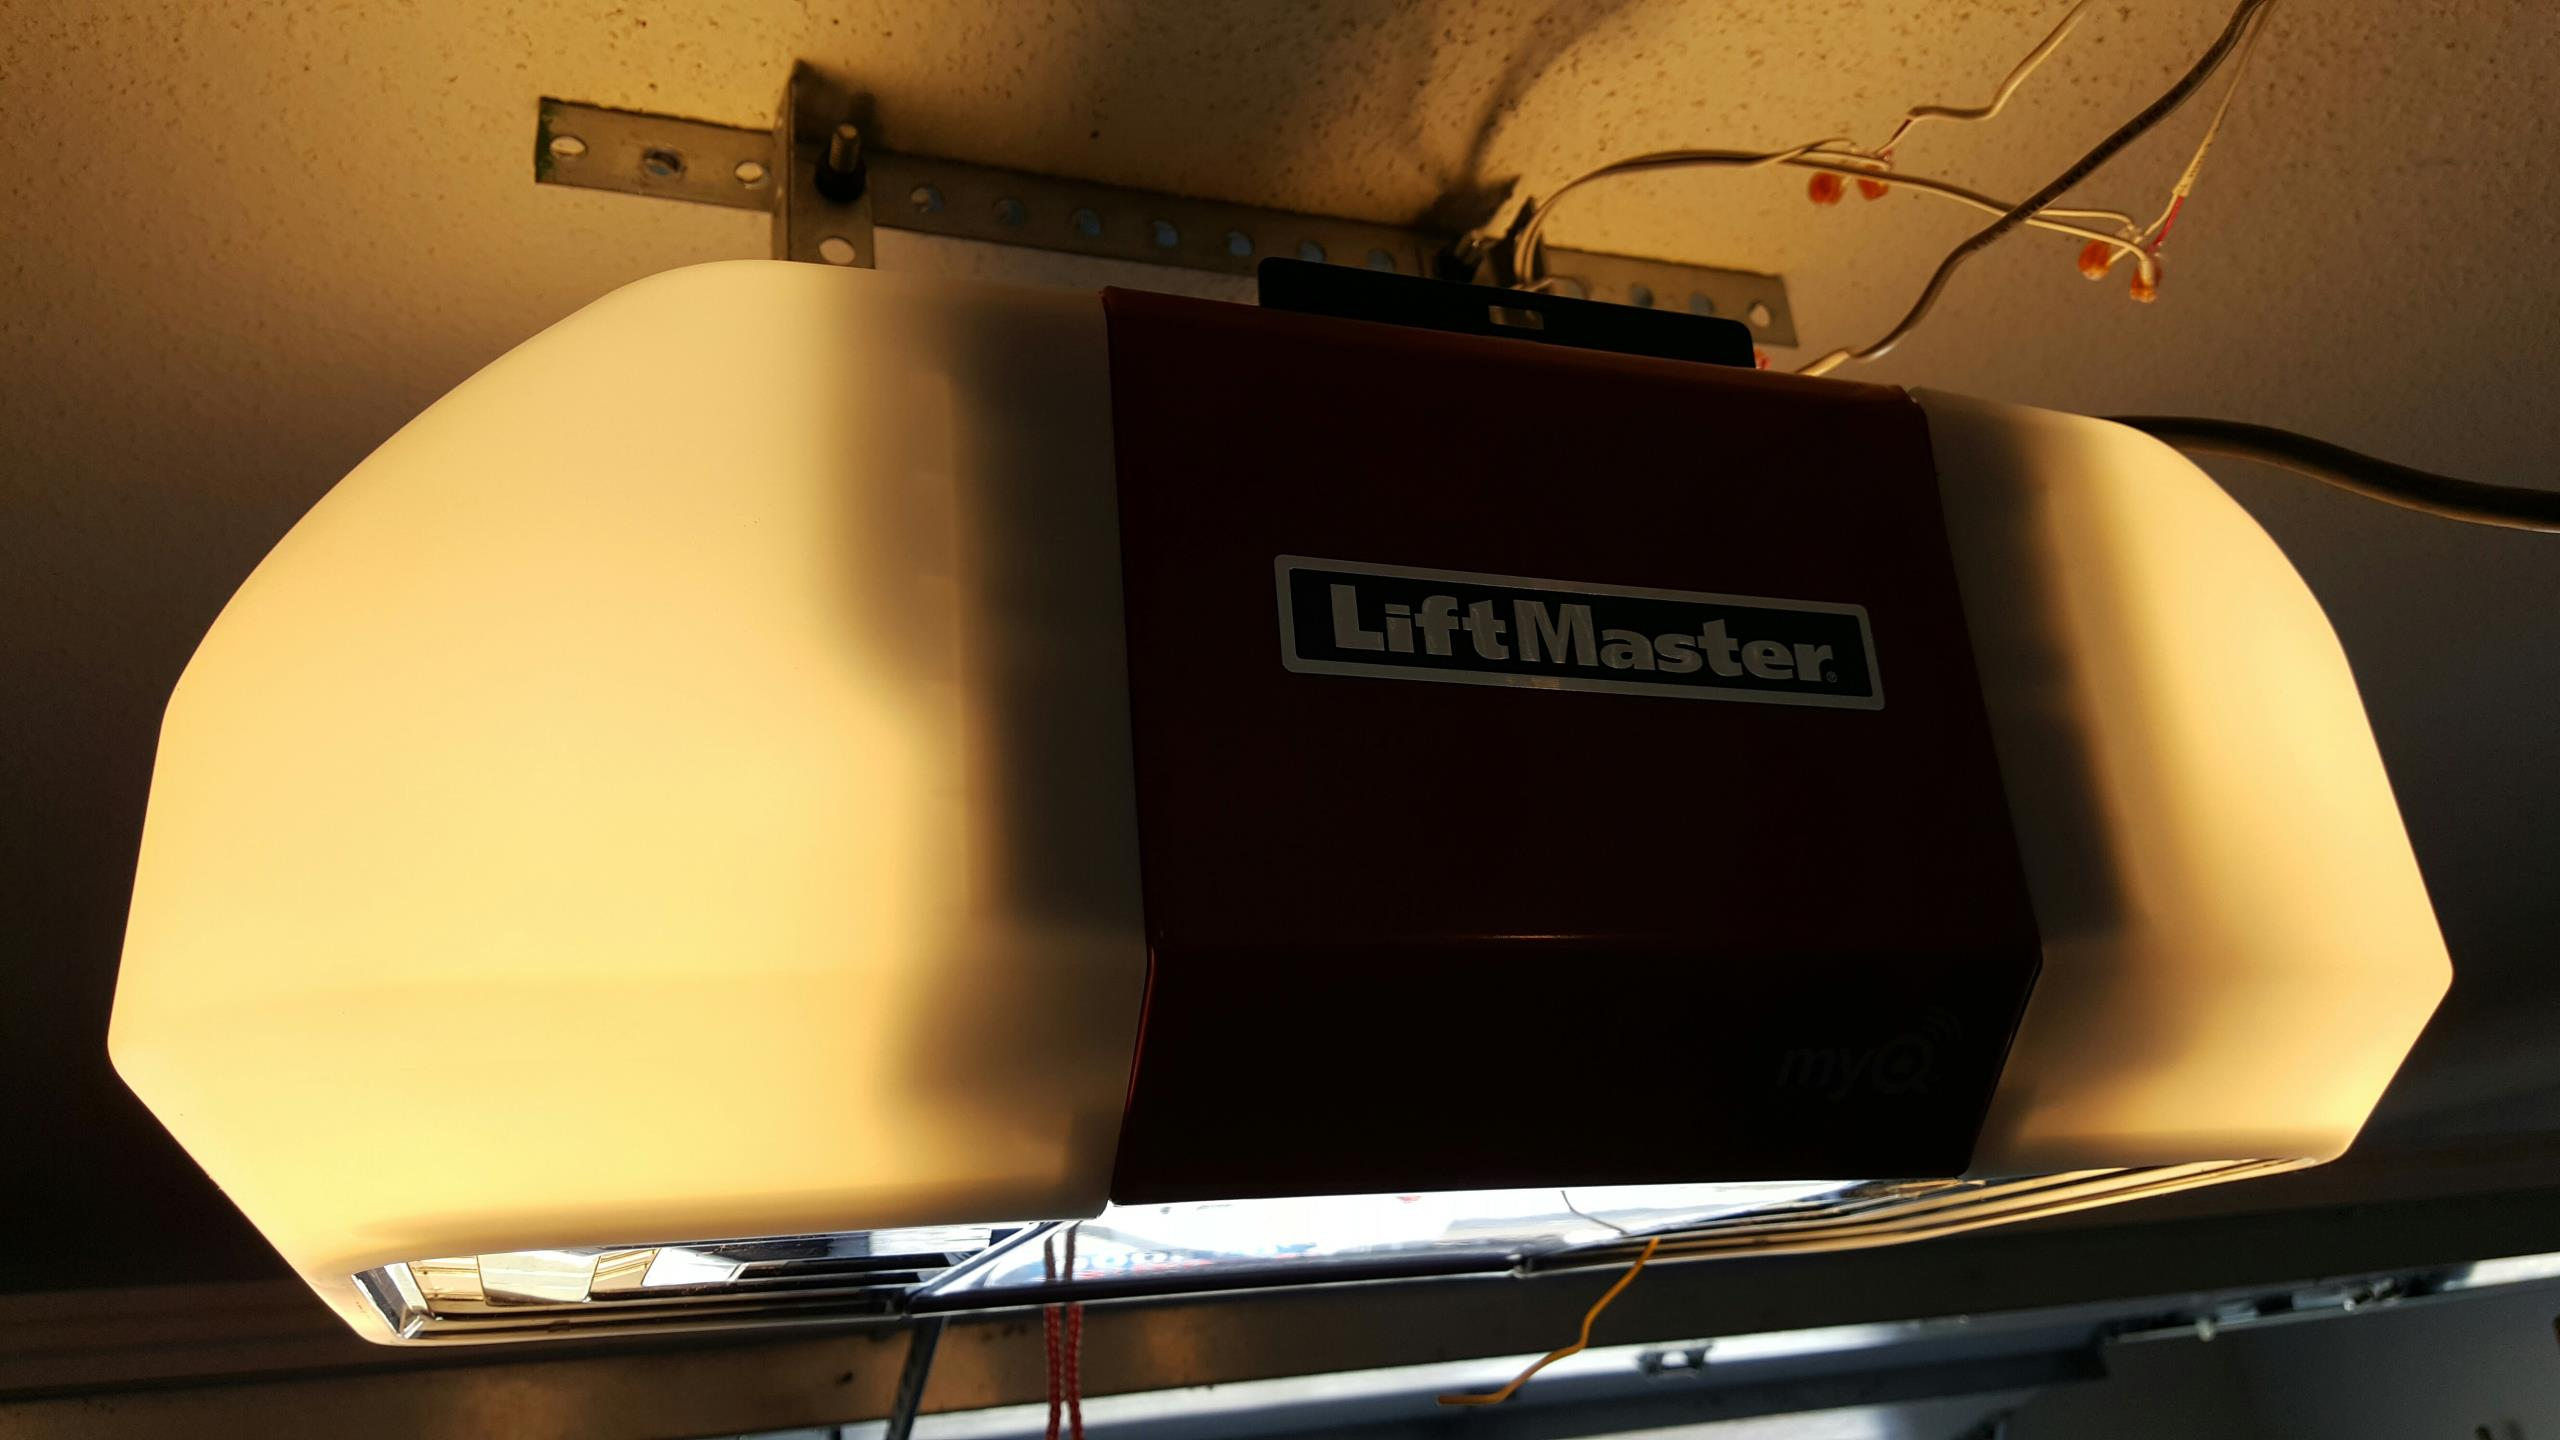 Lakeland, MN - Garage door service garage door opener replacement Liftmaster belt drive